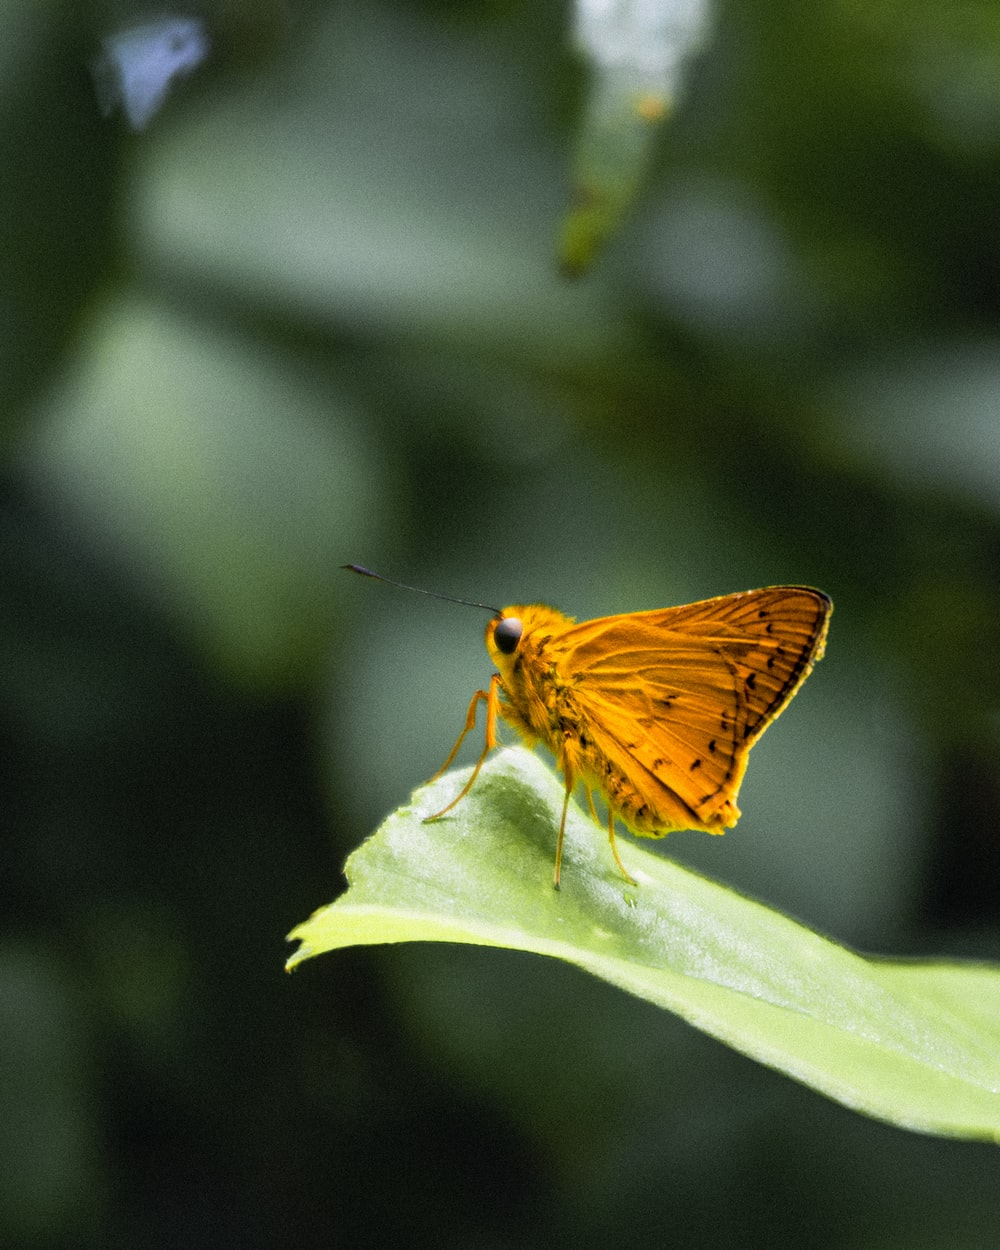 brown butterfly perched on green leaf in close up photography during daytime